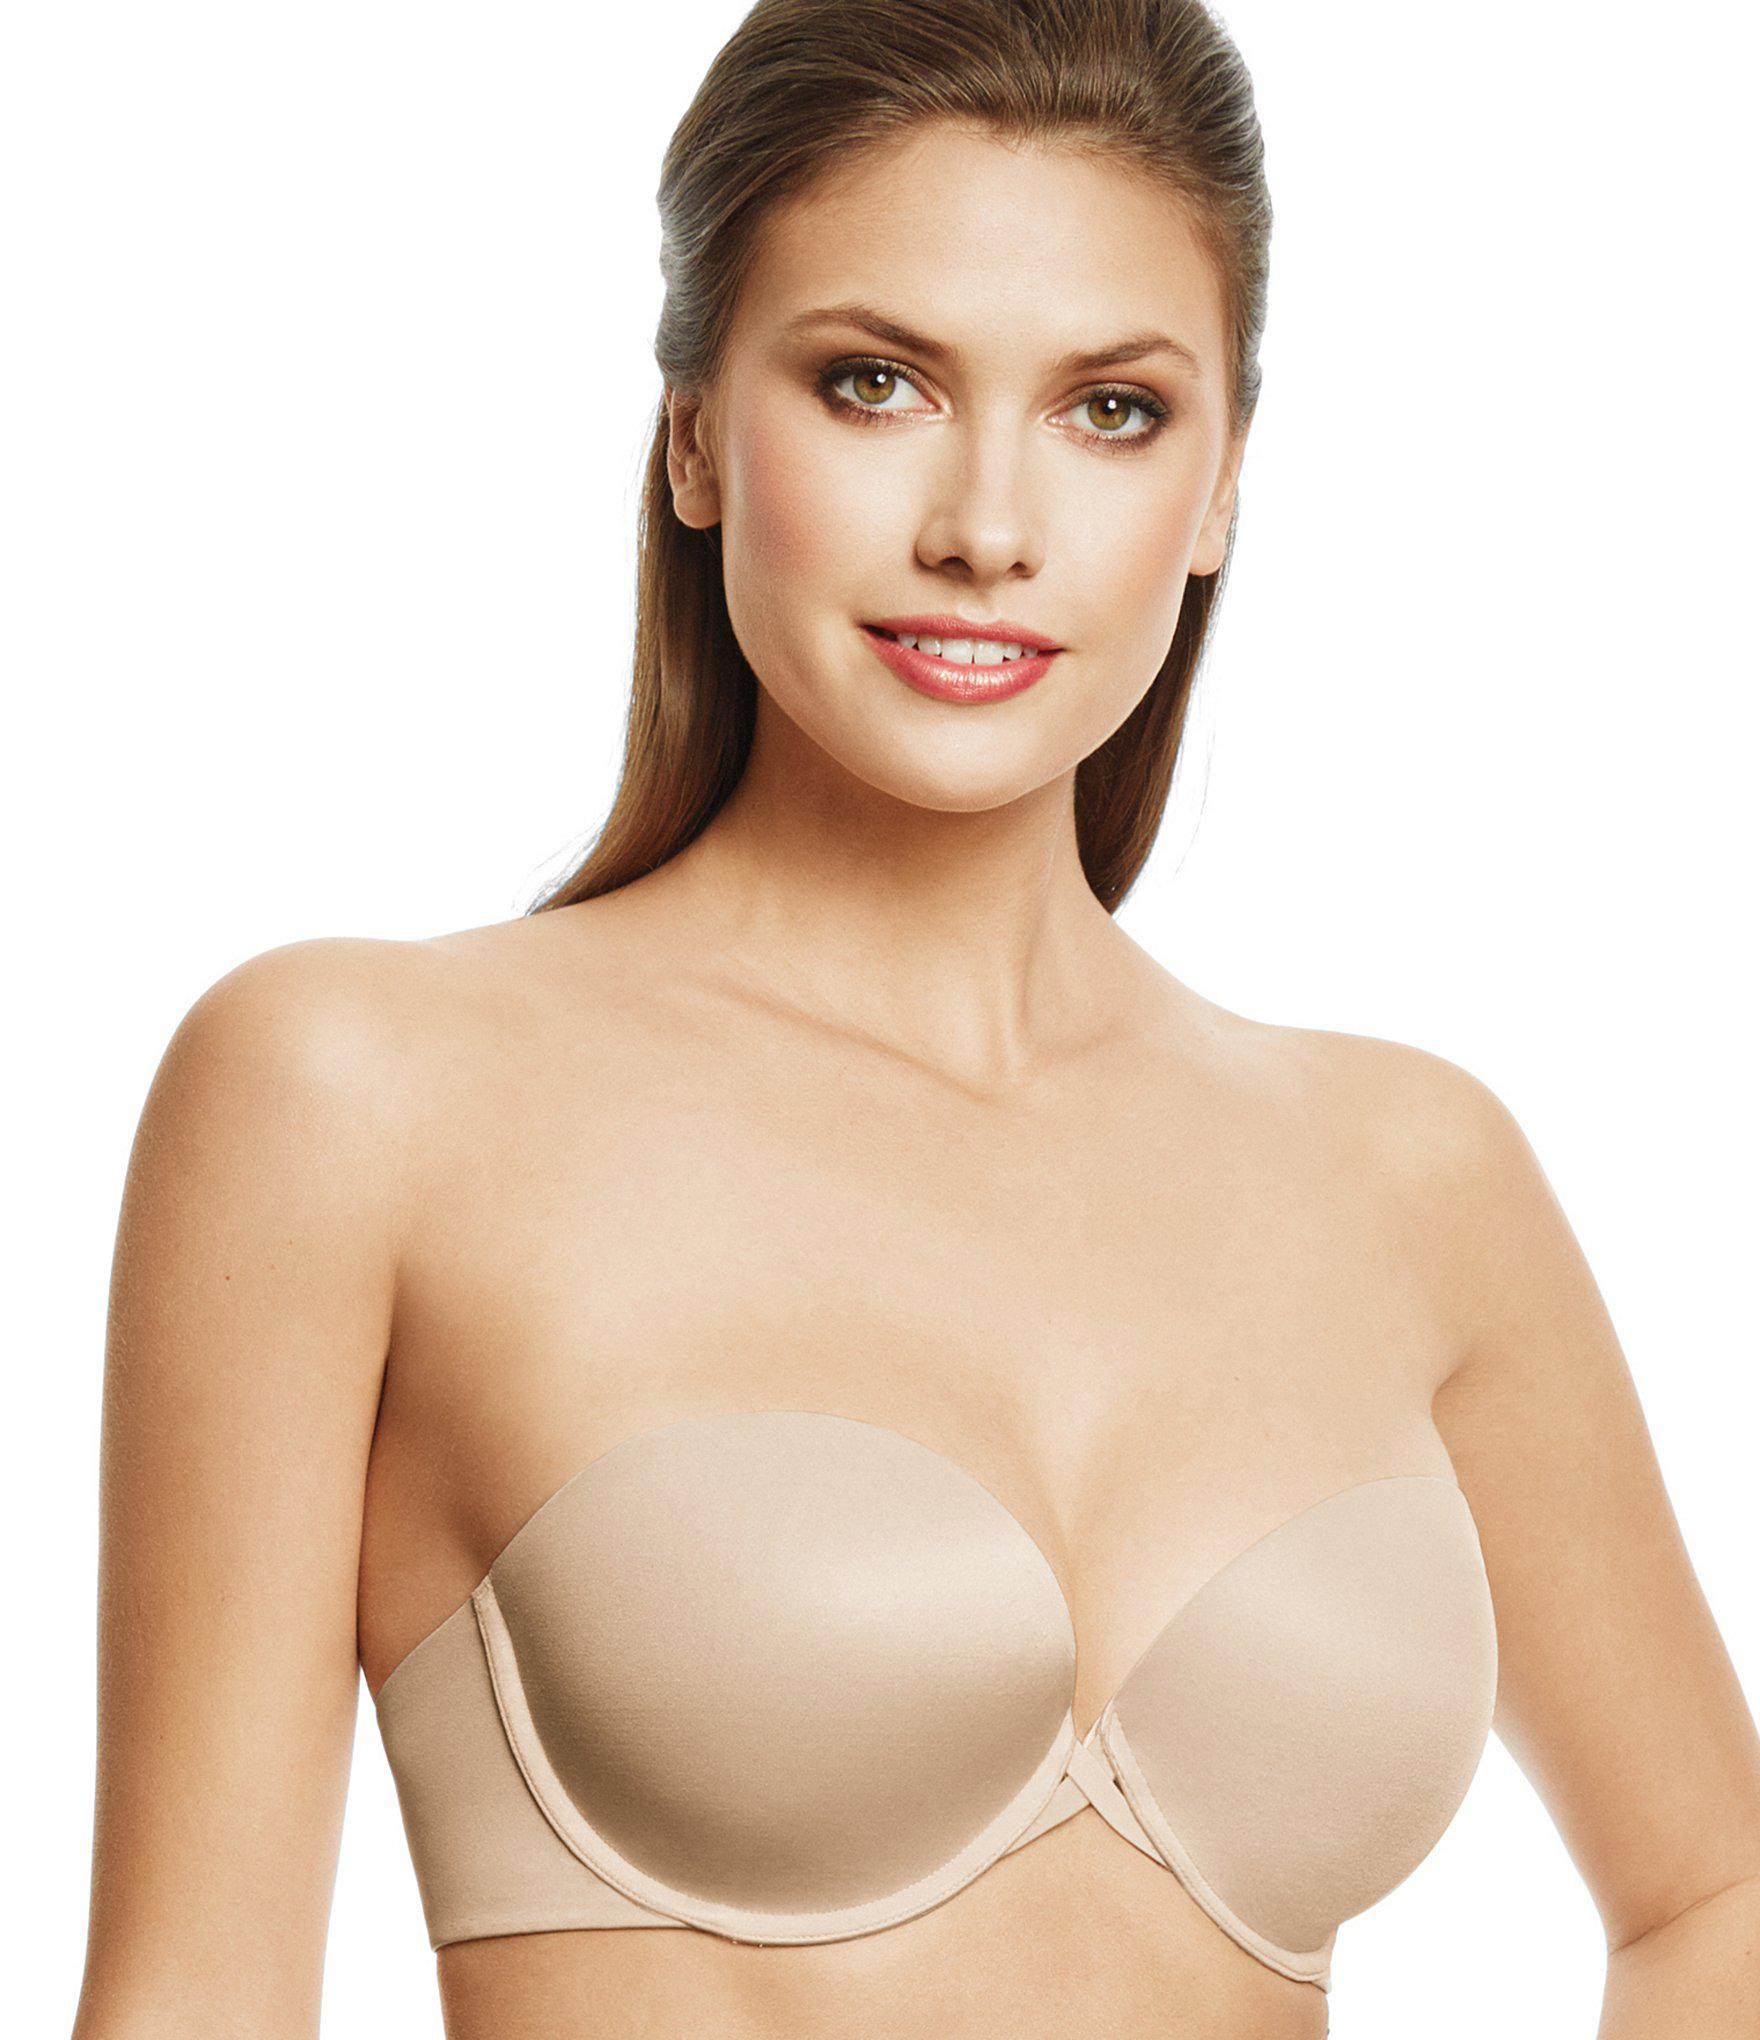 ed99866a44ba6 Lyst - Wacoal Seamless Push-up Strapless Bra in Natural